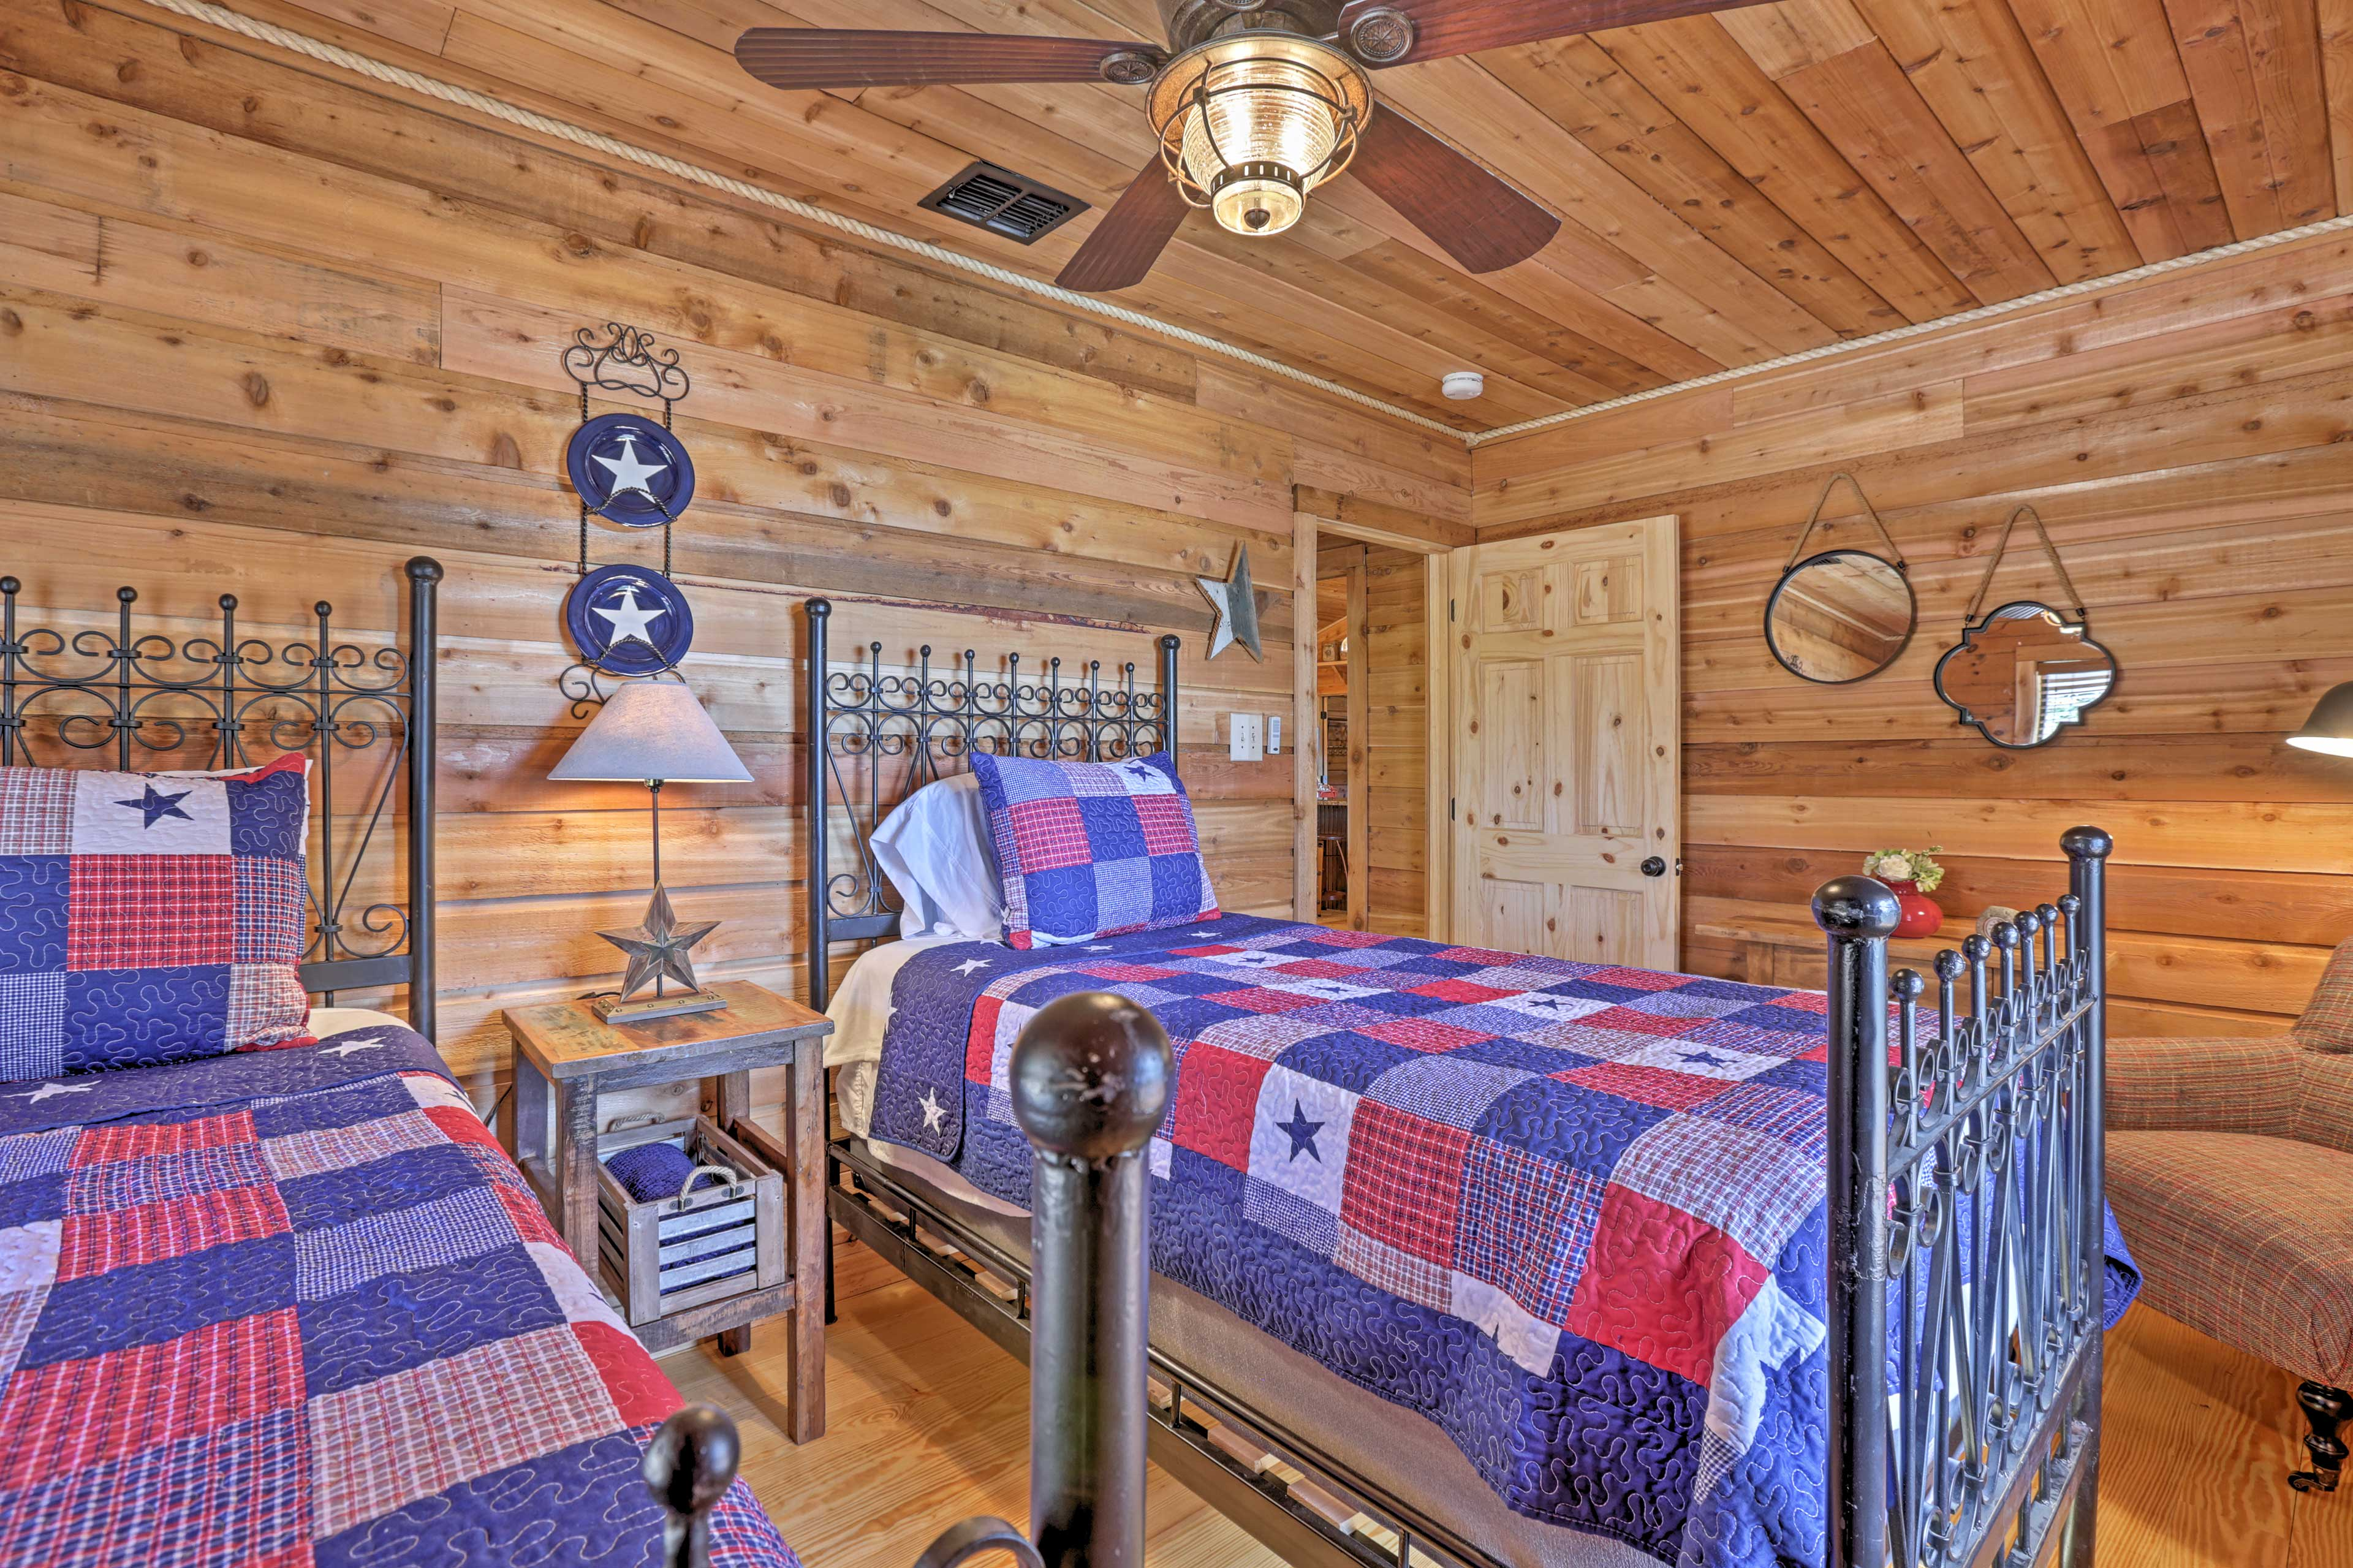 There's a set of twin-sized beds in the third bedroom.